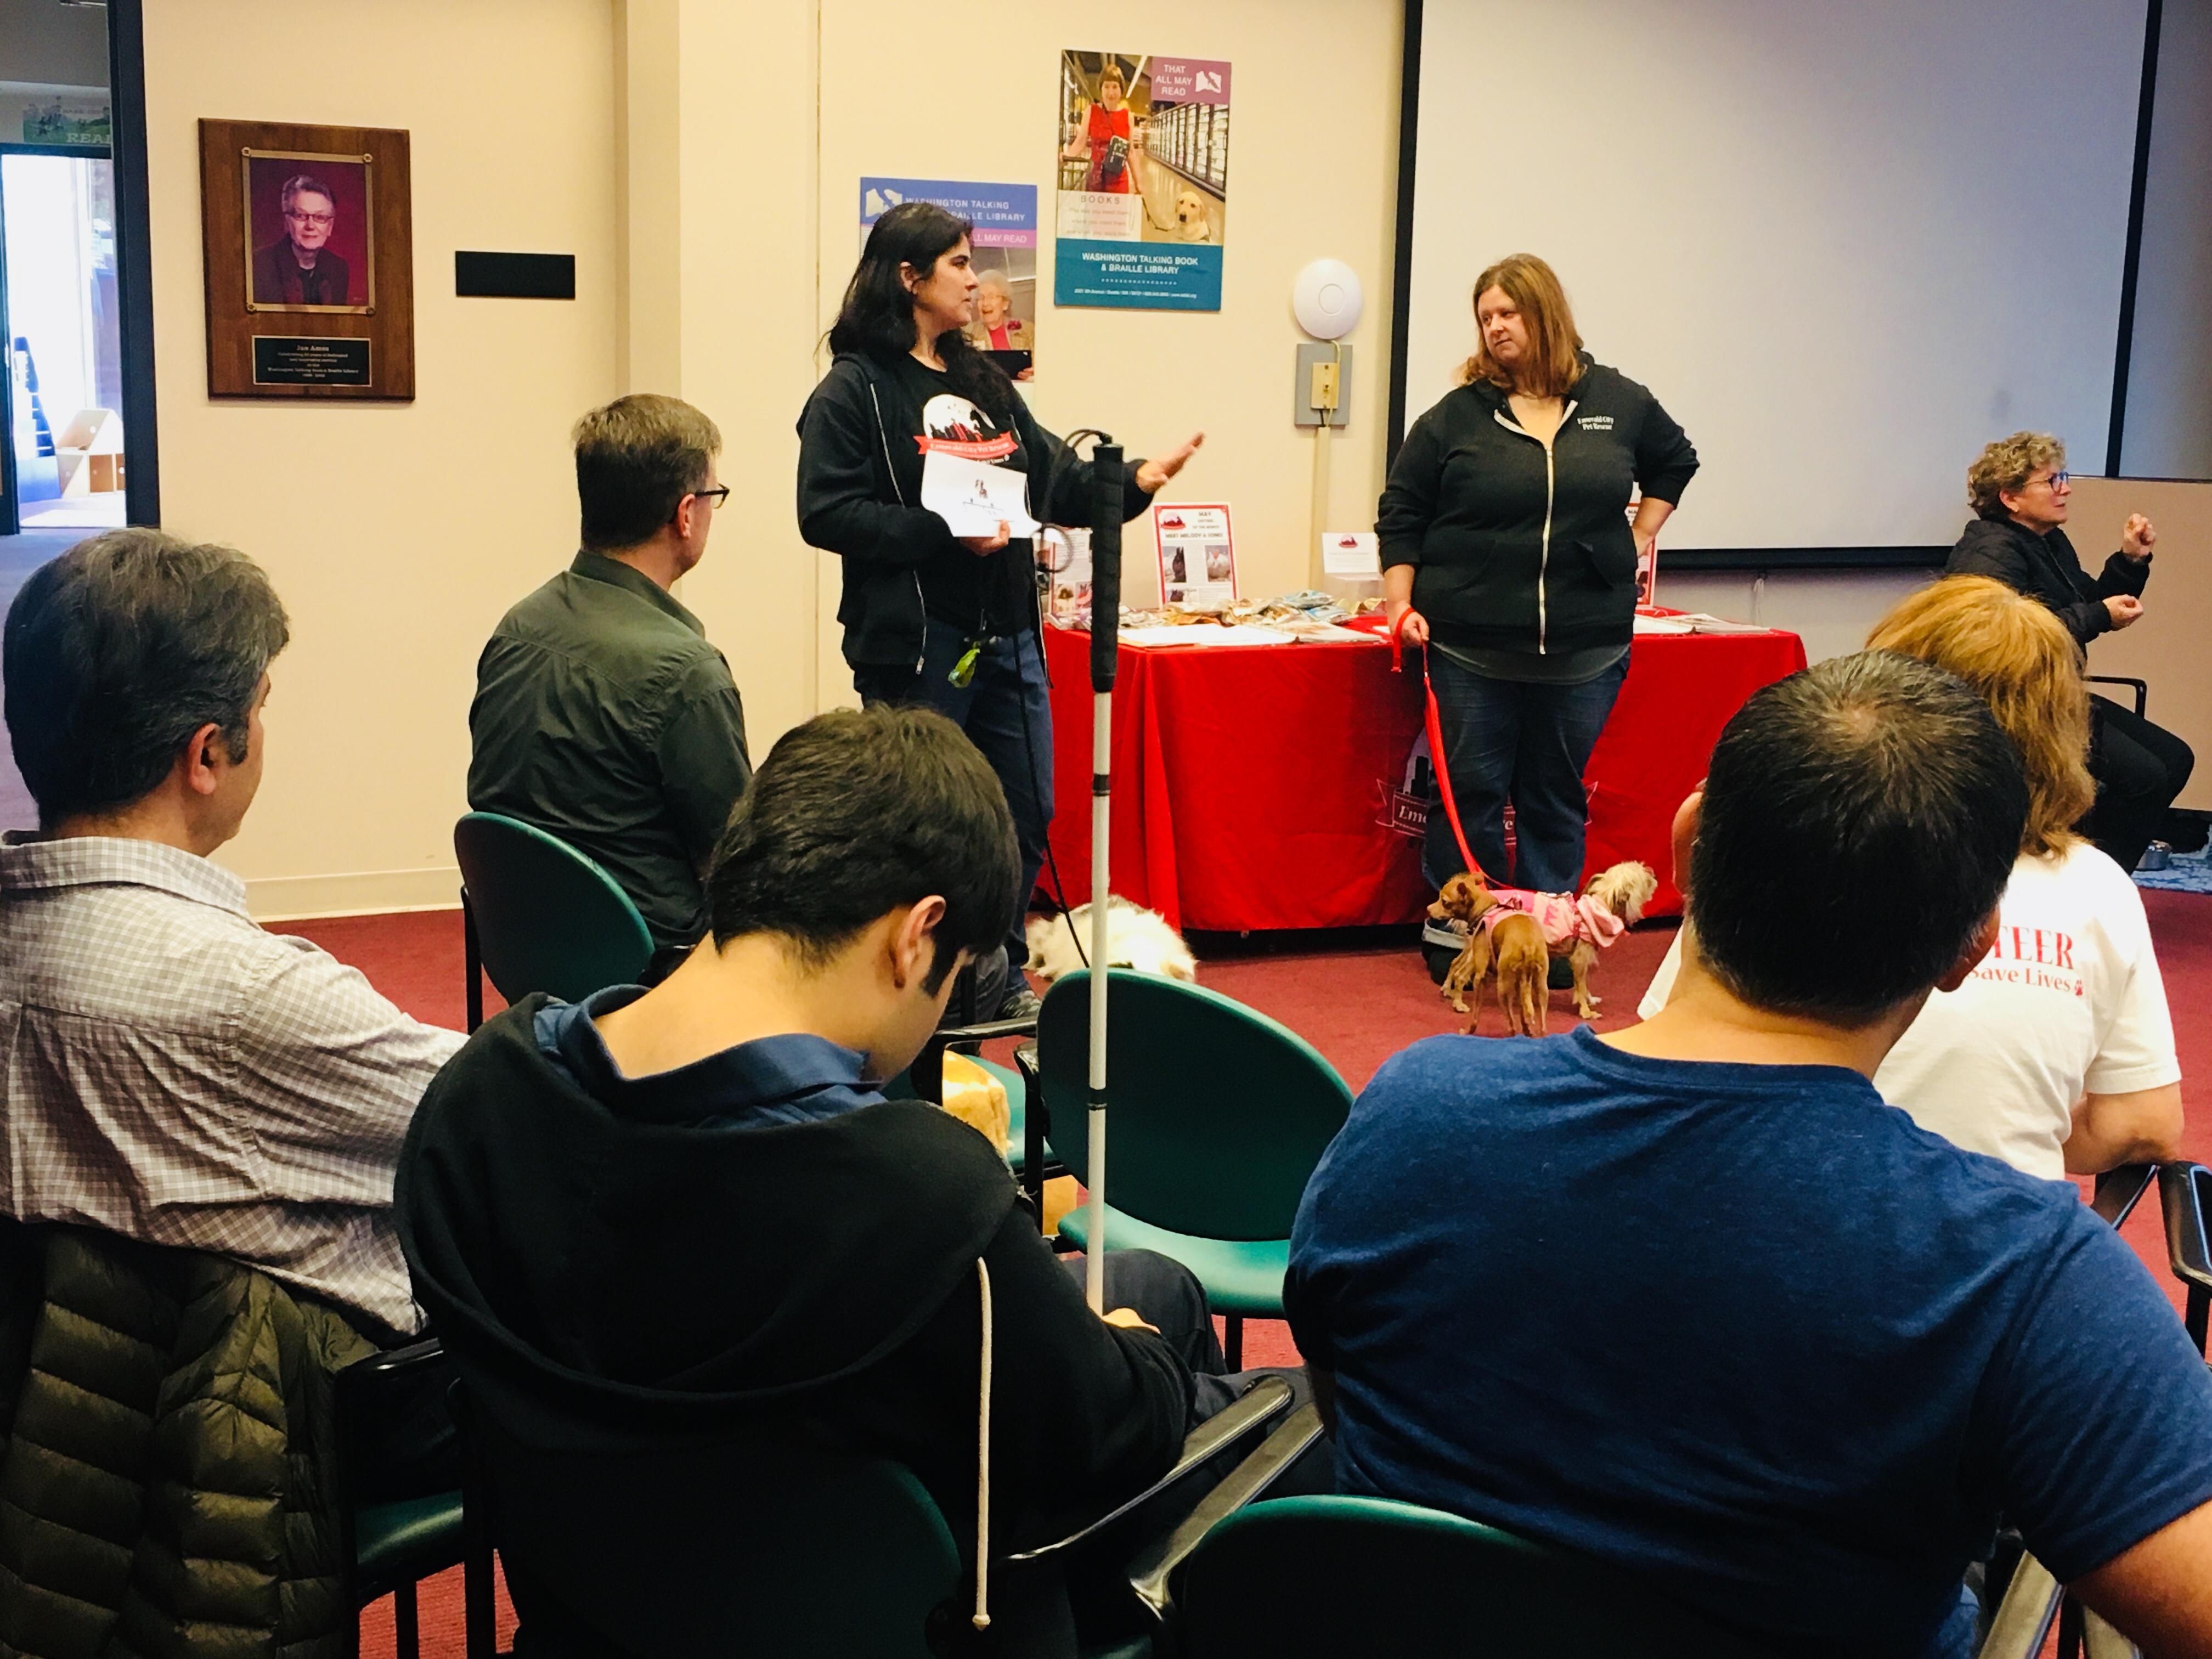 Emerald City Pet Rescue representative Bethany Black delivers a presentation about the care and rescue of animals with special needs to guests at the Special Pet Meet & Greet Event on May 5, 2018.